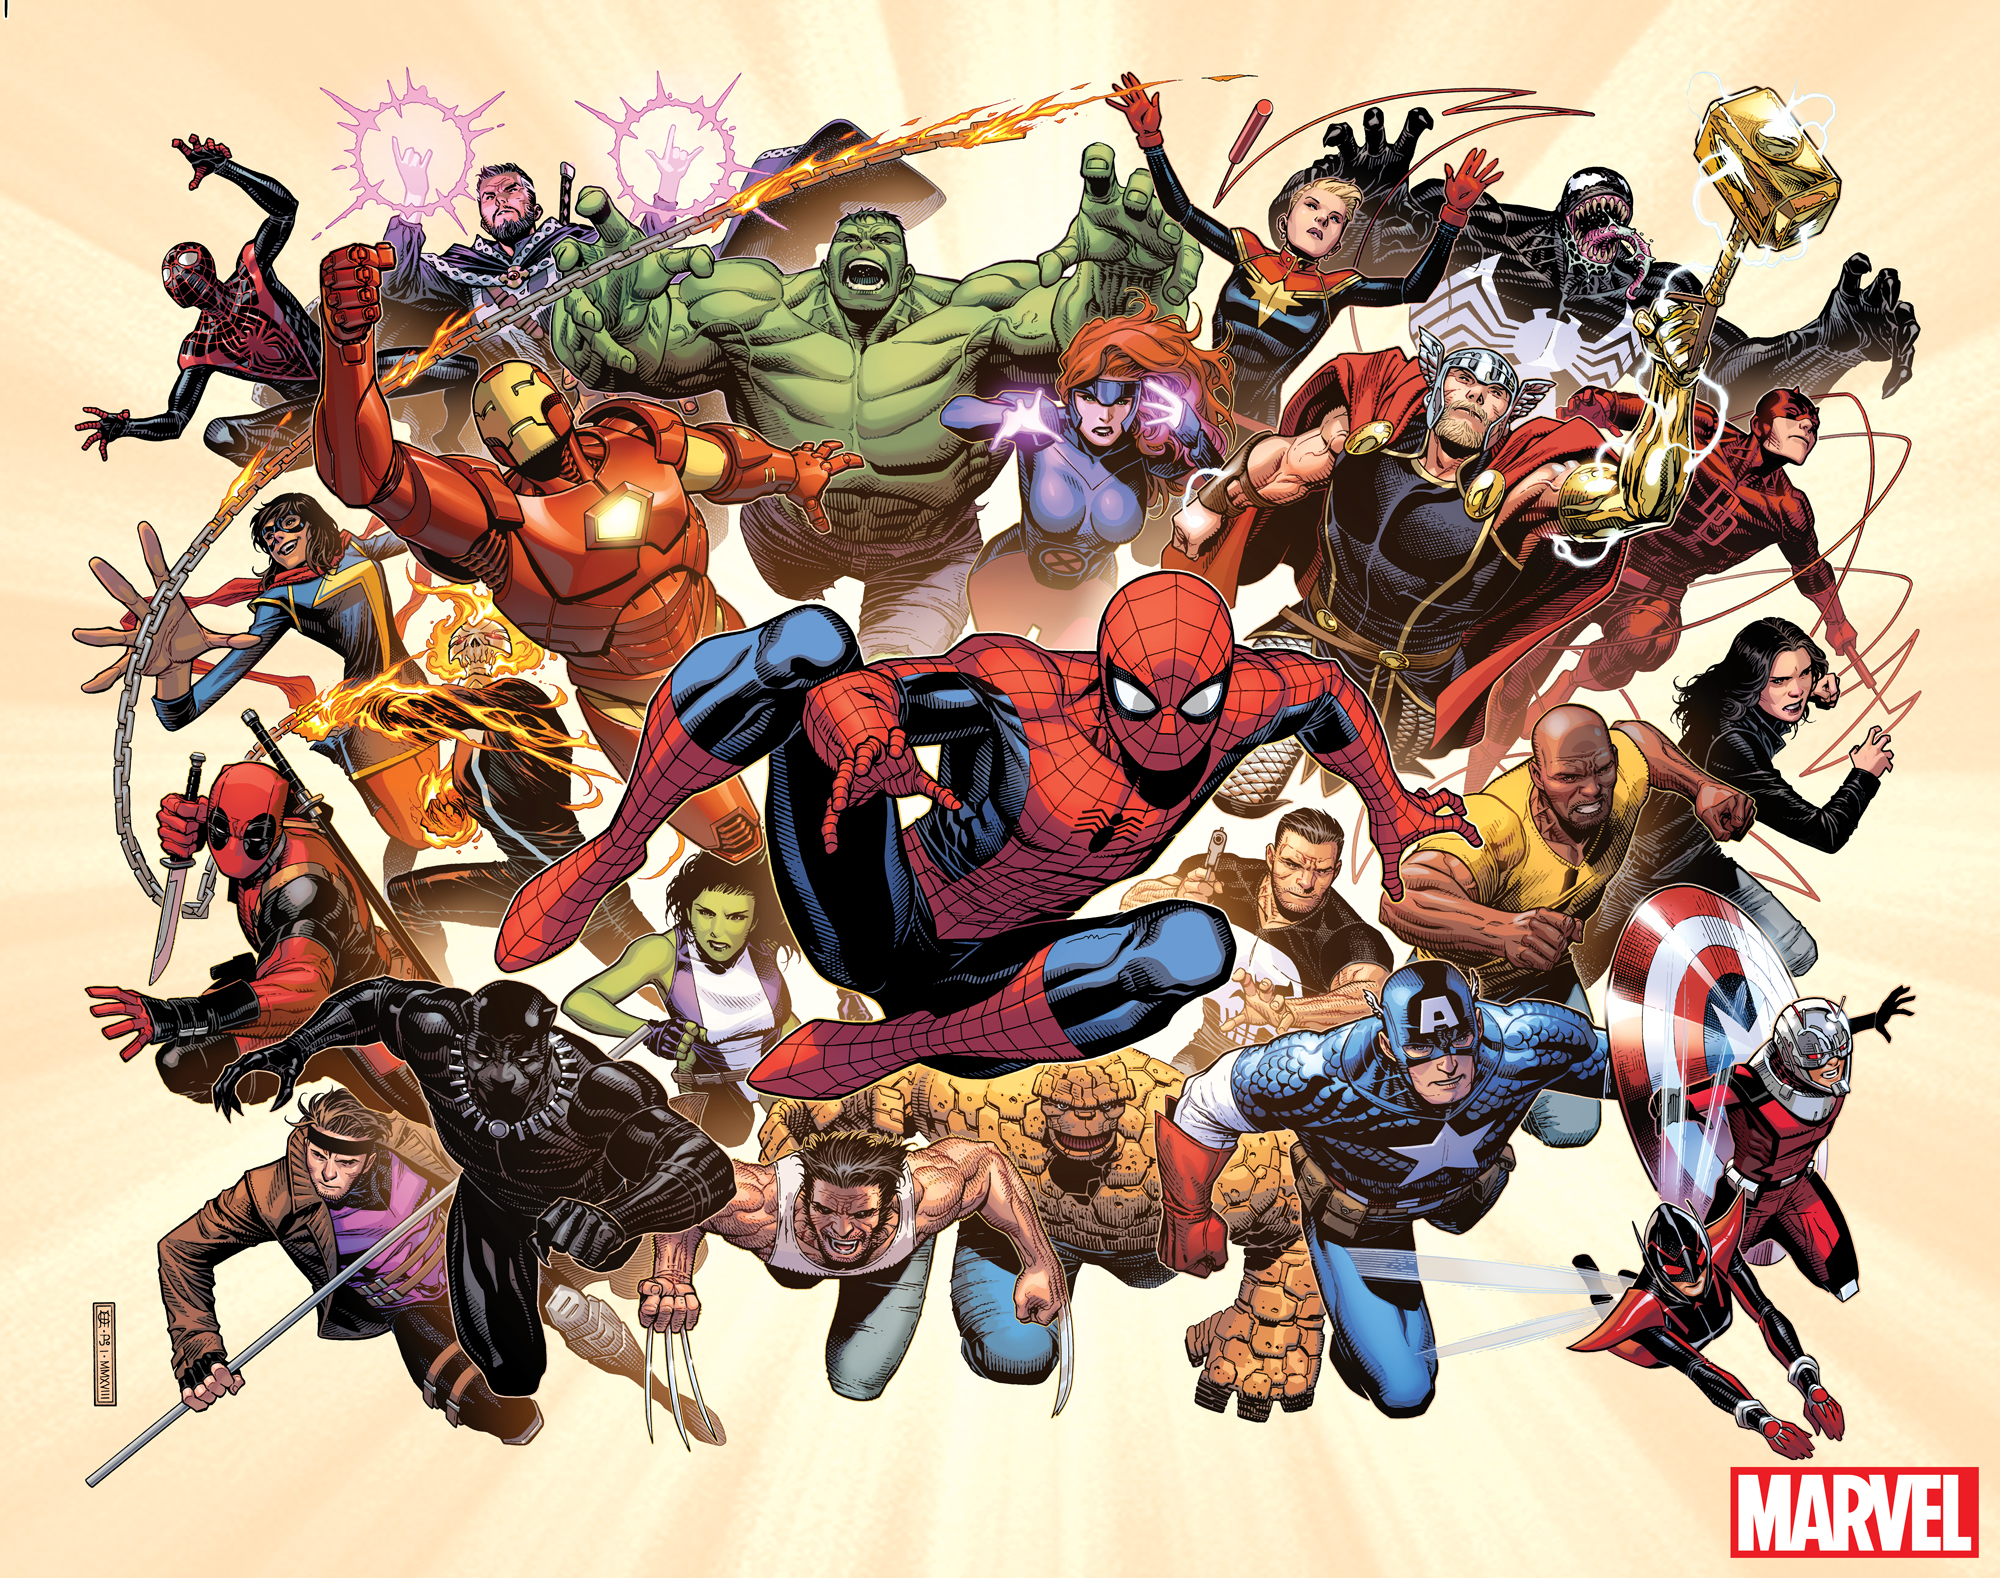 Marvel Comics Promises 'A Fresh Start' This Year